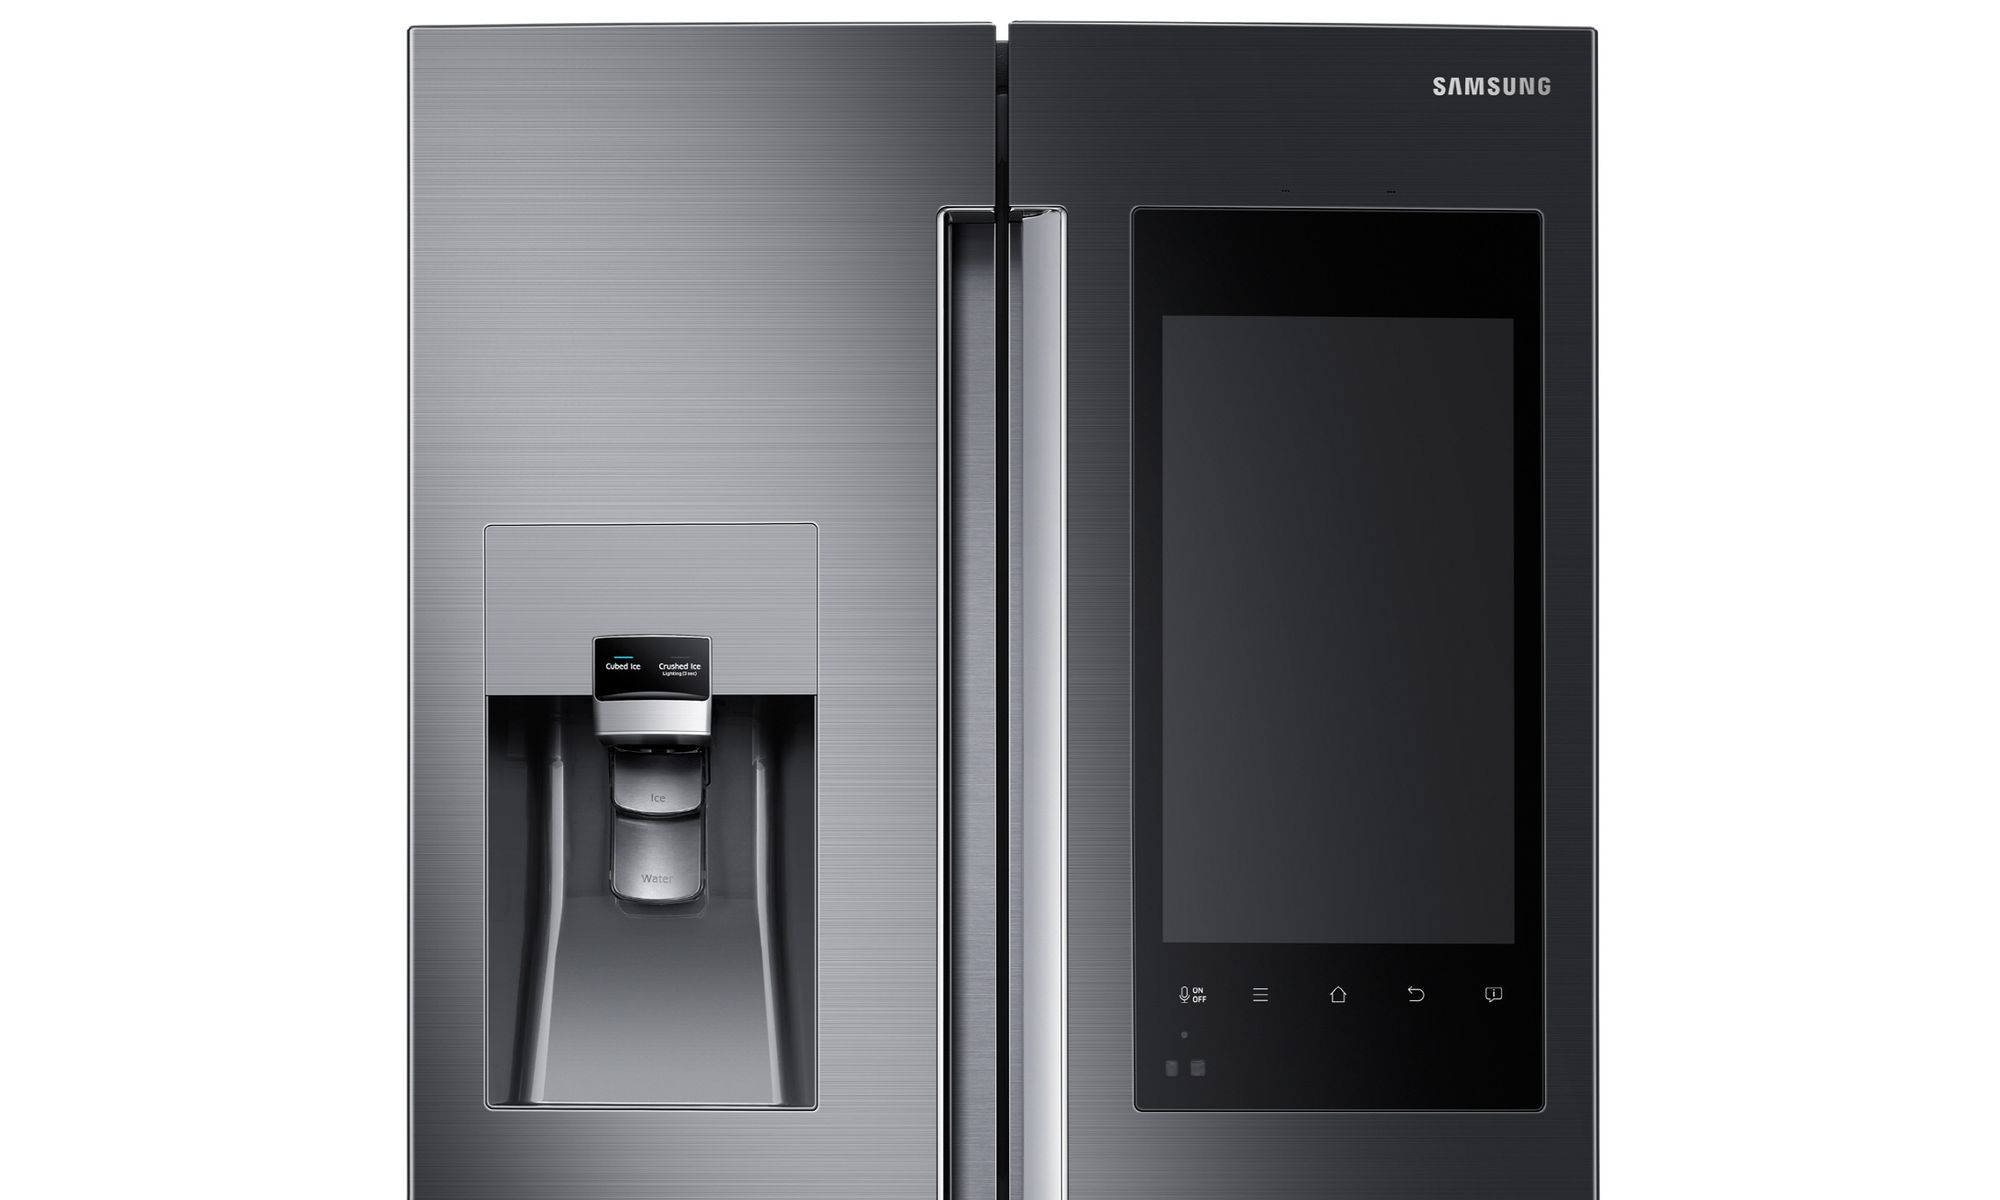 ces 2016 un frigo sous android chez samsung frandroid. Black Bedroom Furniture Sets. Home Design Ideas